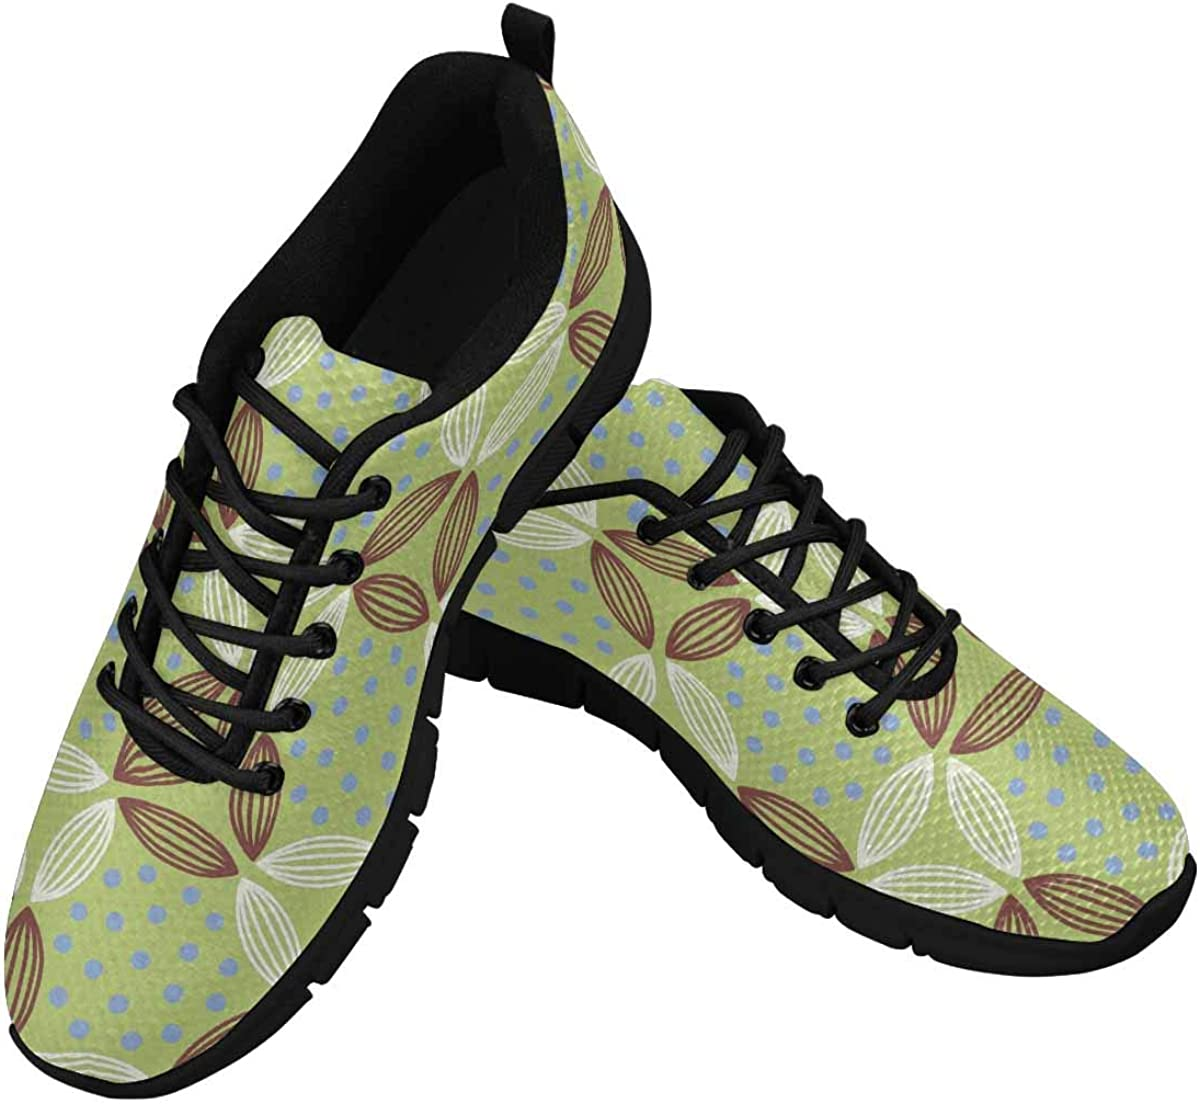 InterestPrint Abstract Dots Pattern Women's Lace Up Breathable Non Slip Sneaker